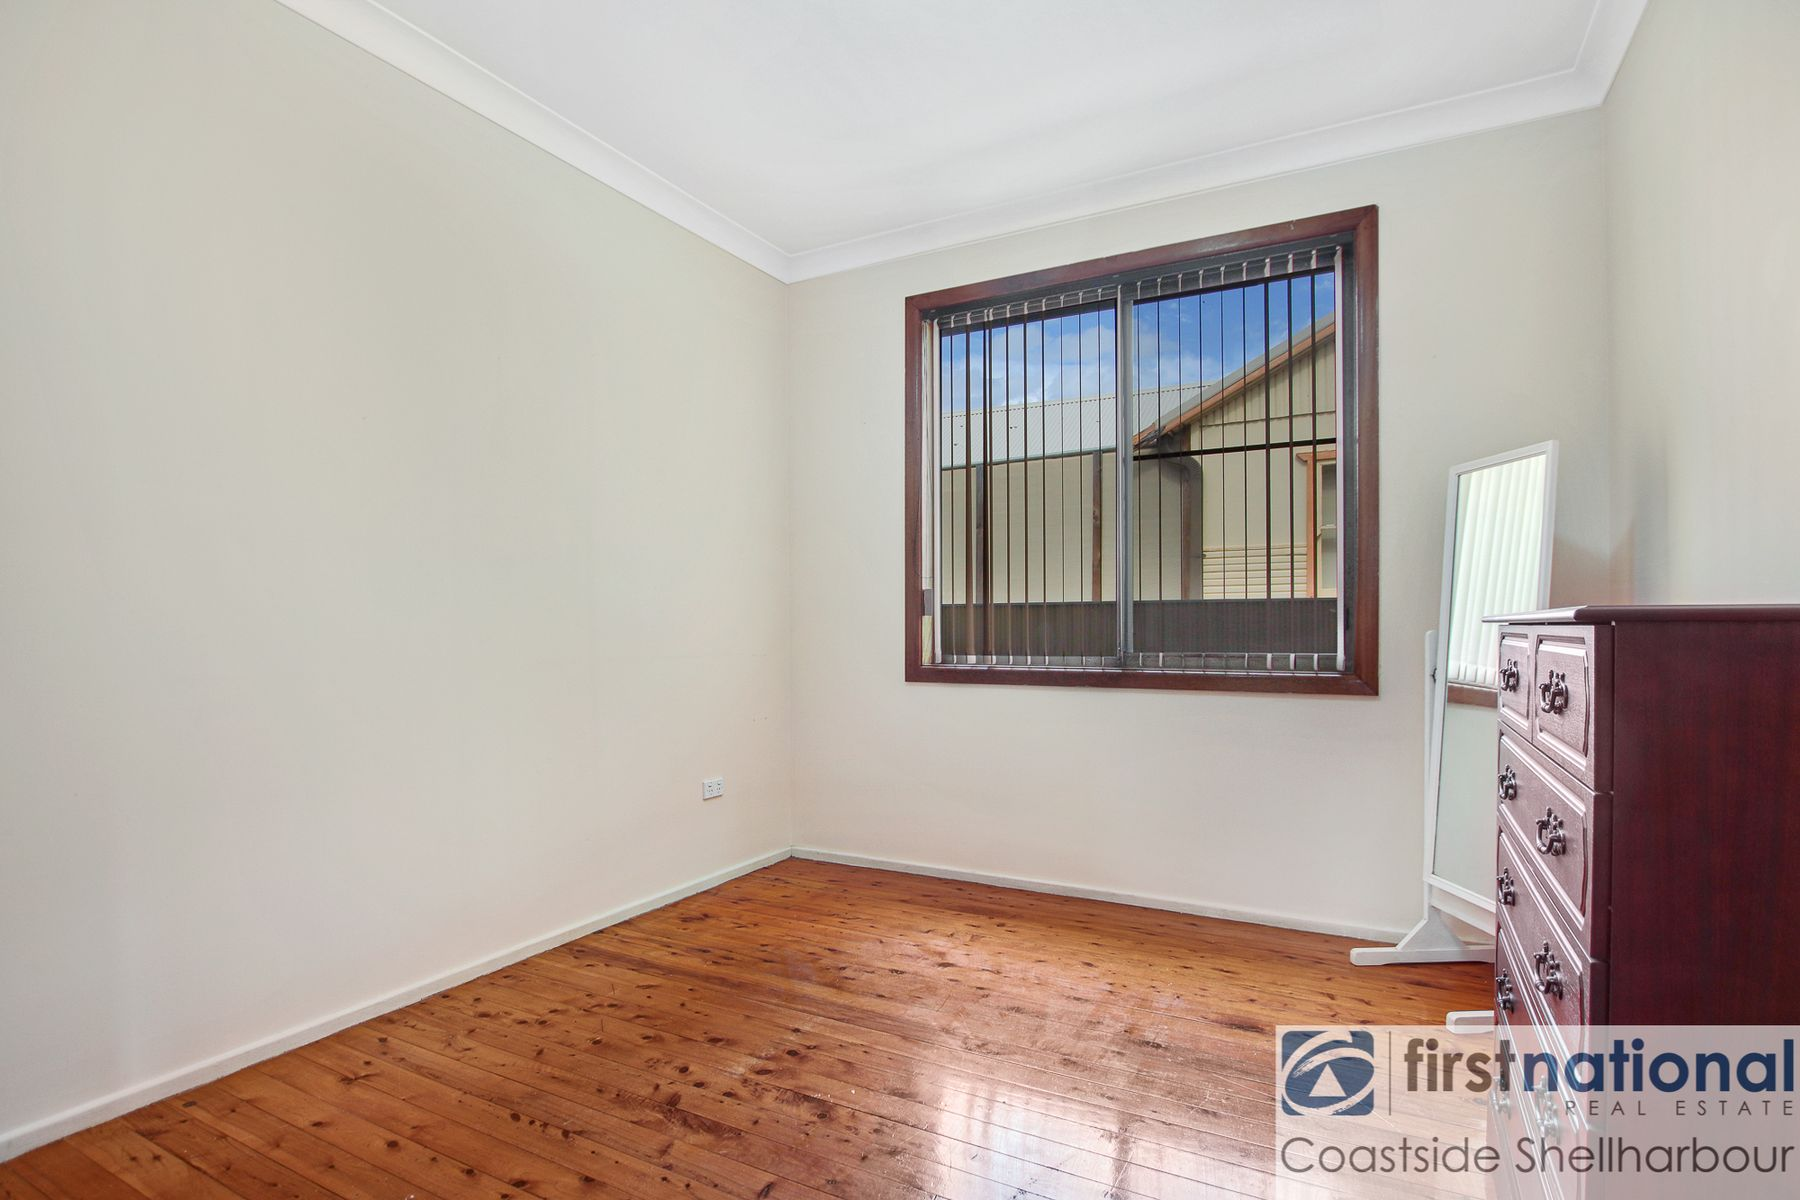 266 Shellharbour Road, Barrack Heights, NSW 2528